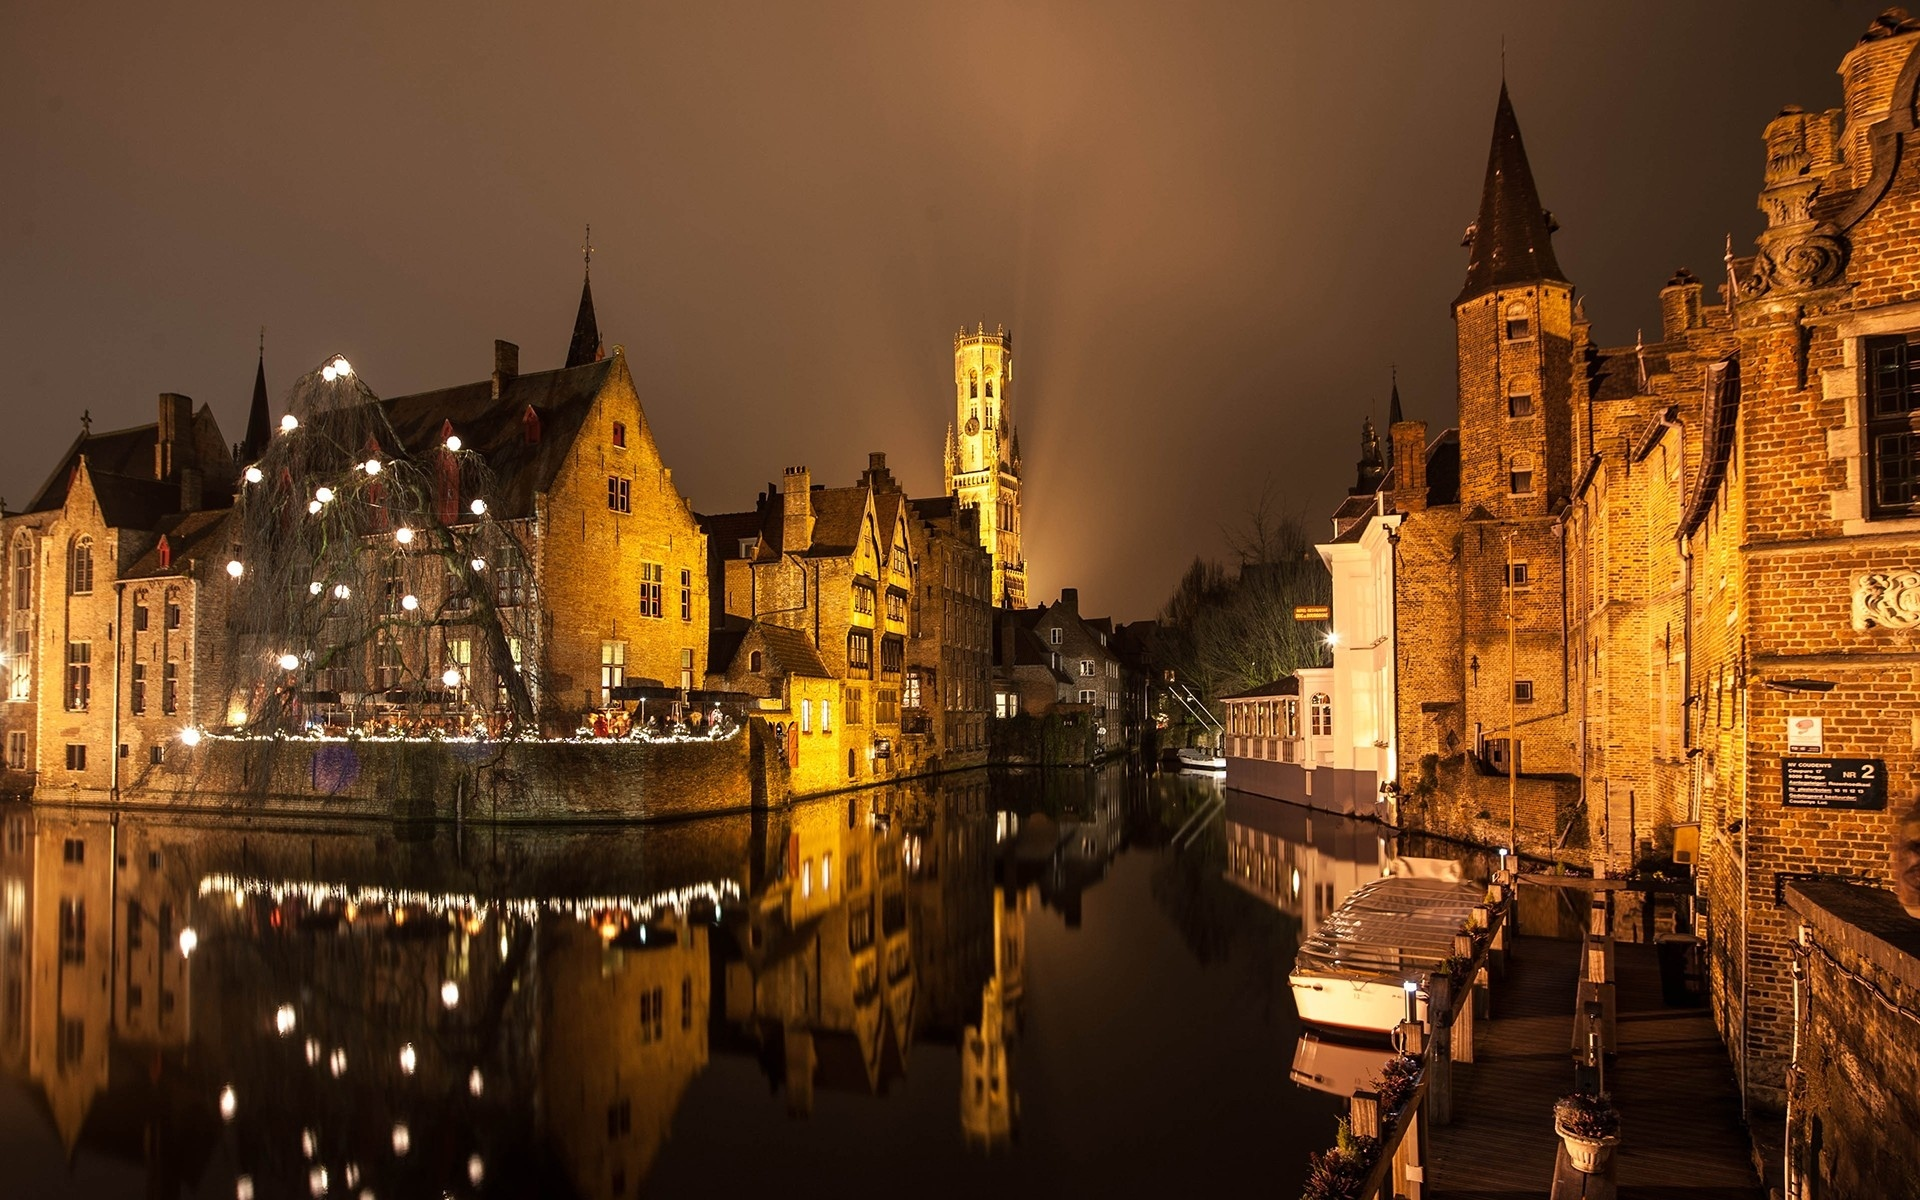 Brugge night lights buildings water canal reflection wallpaper 1920x1200